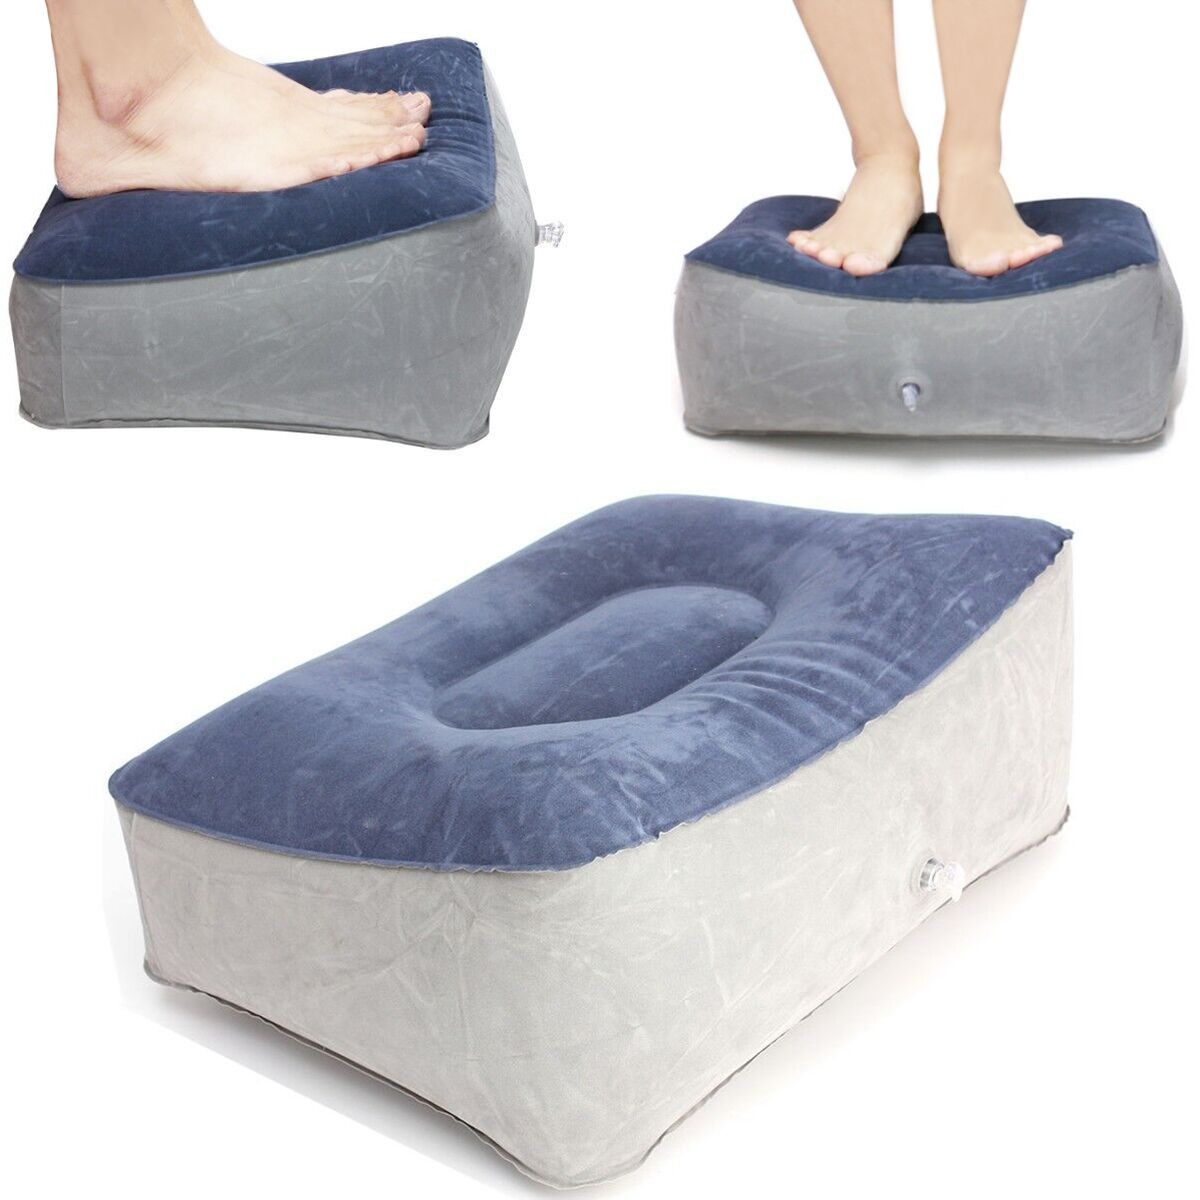 Inflatable Footrest Pillow Travel Home Help Reduce DVT